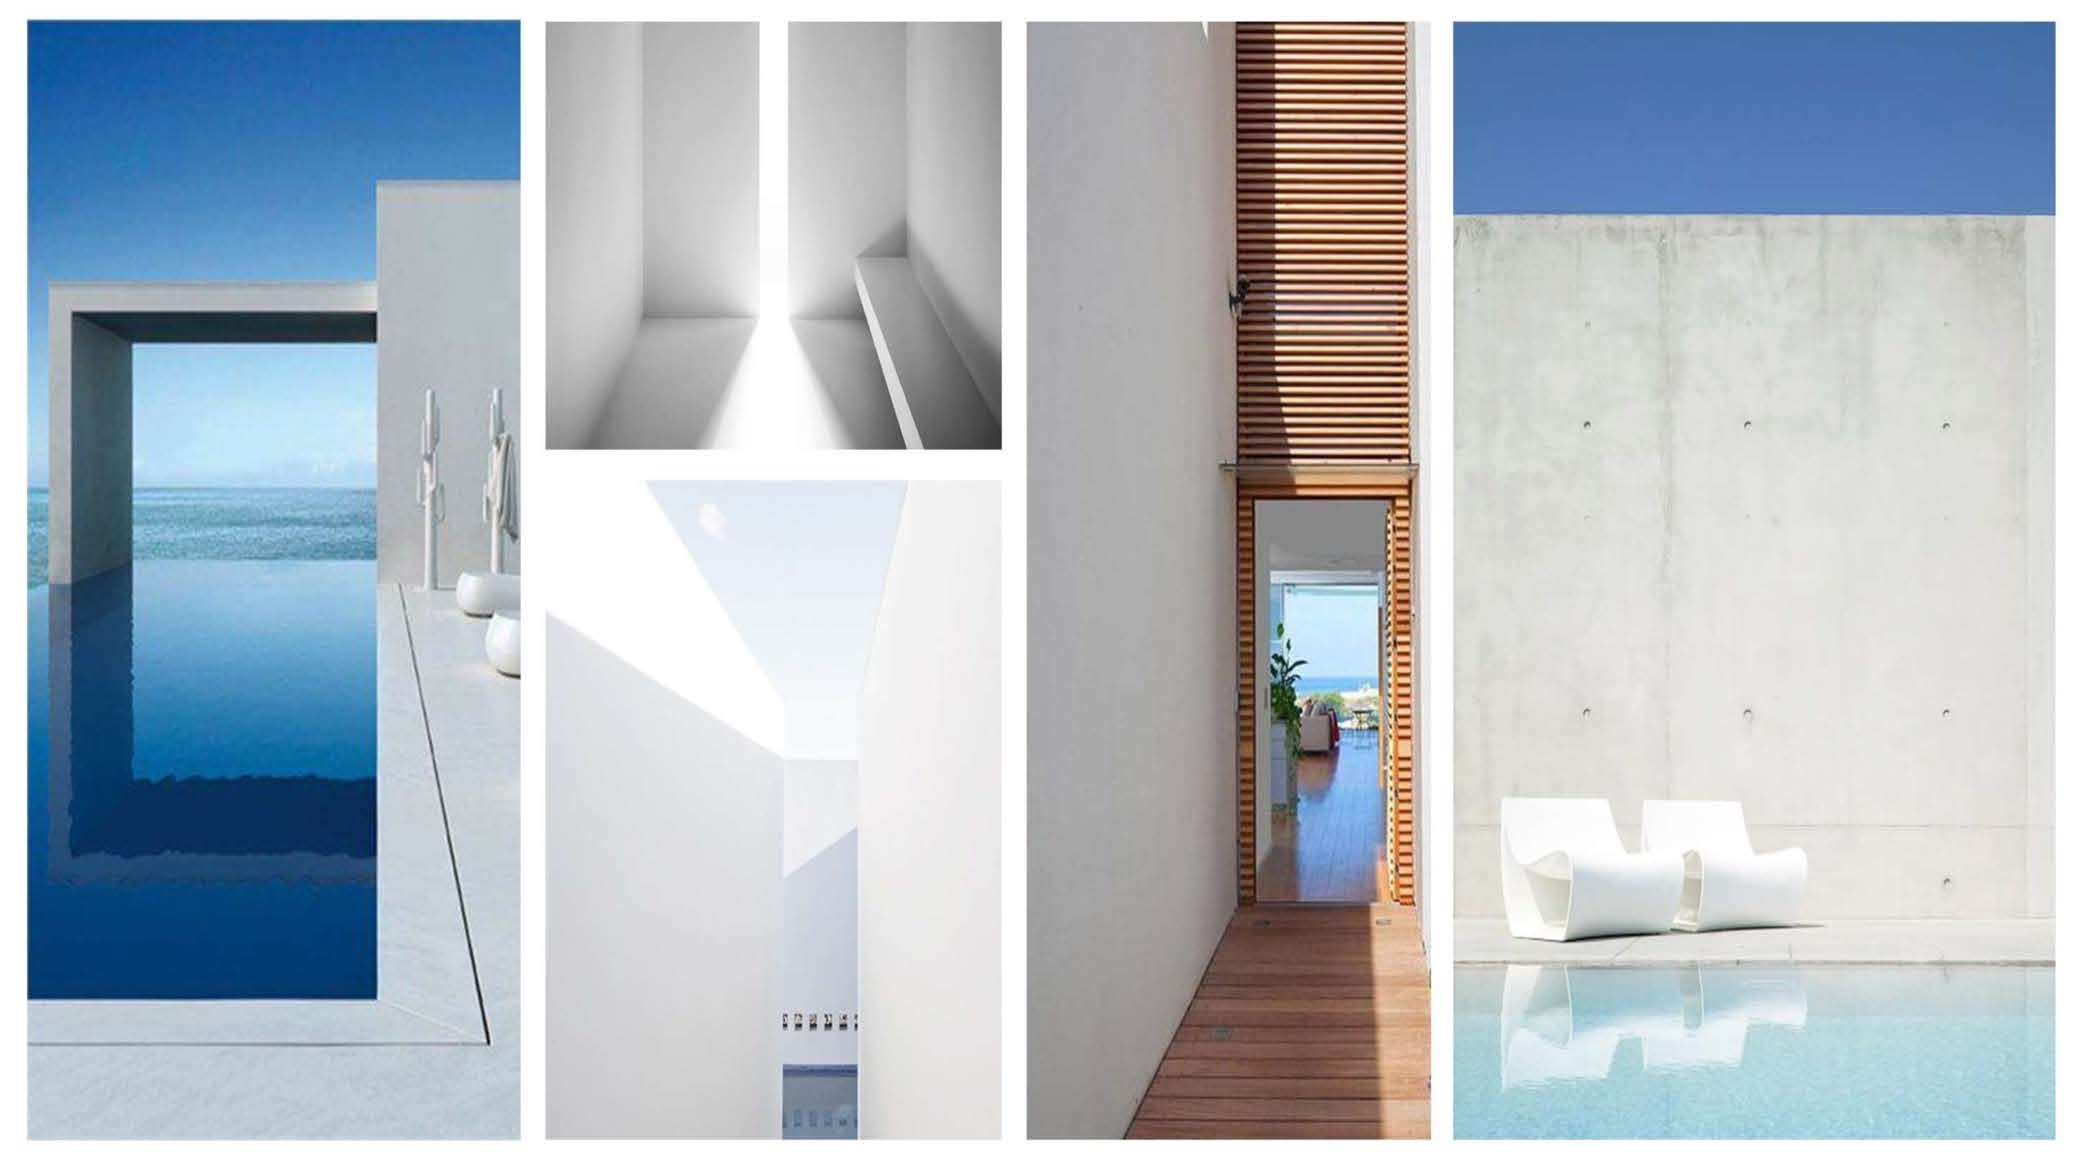 ARCHITECTURAL MOOD